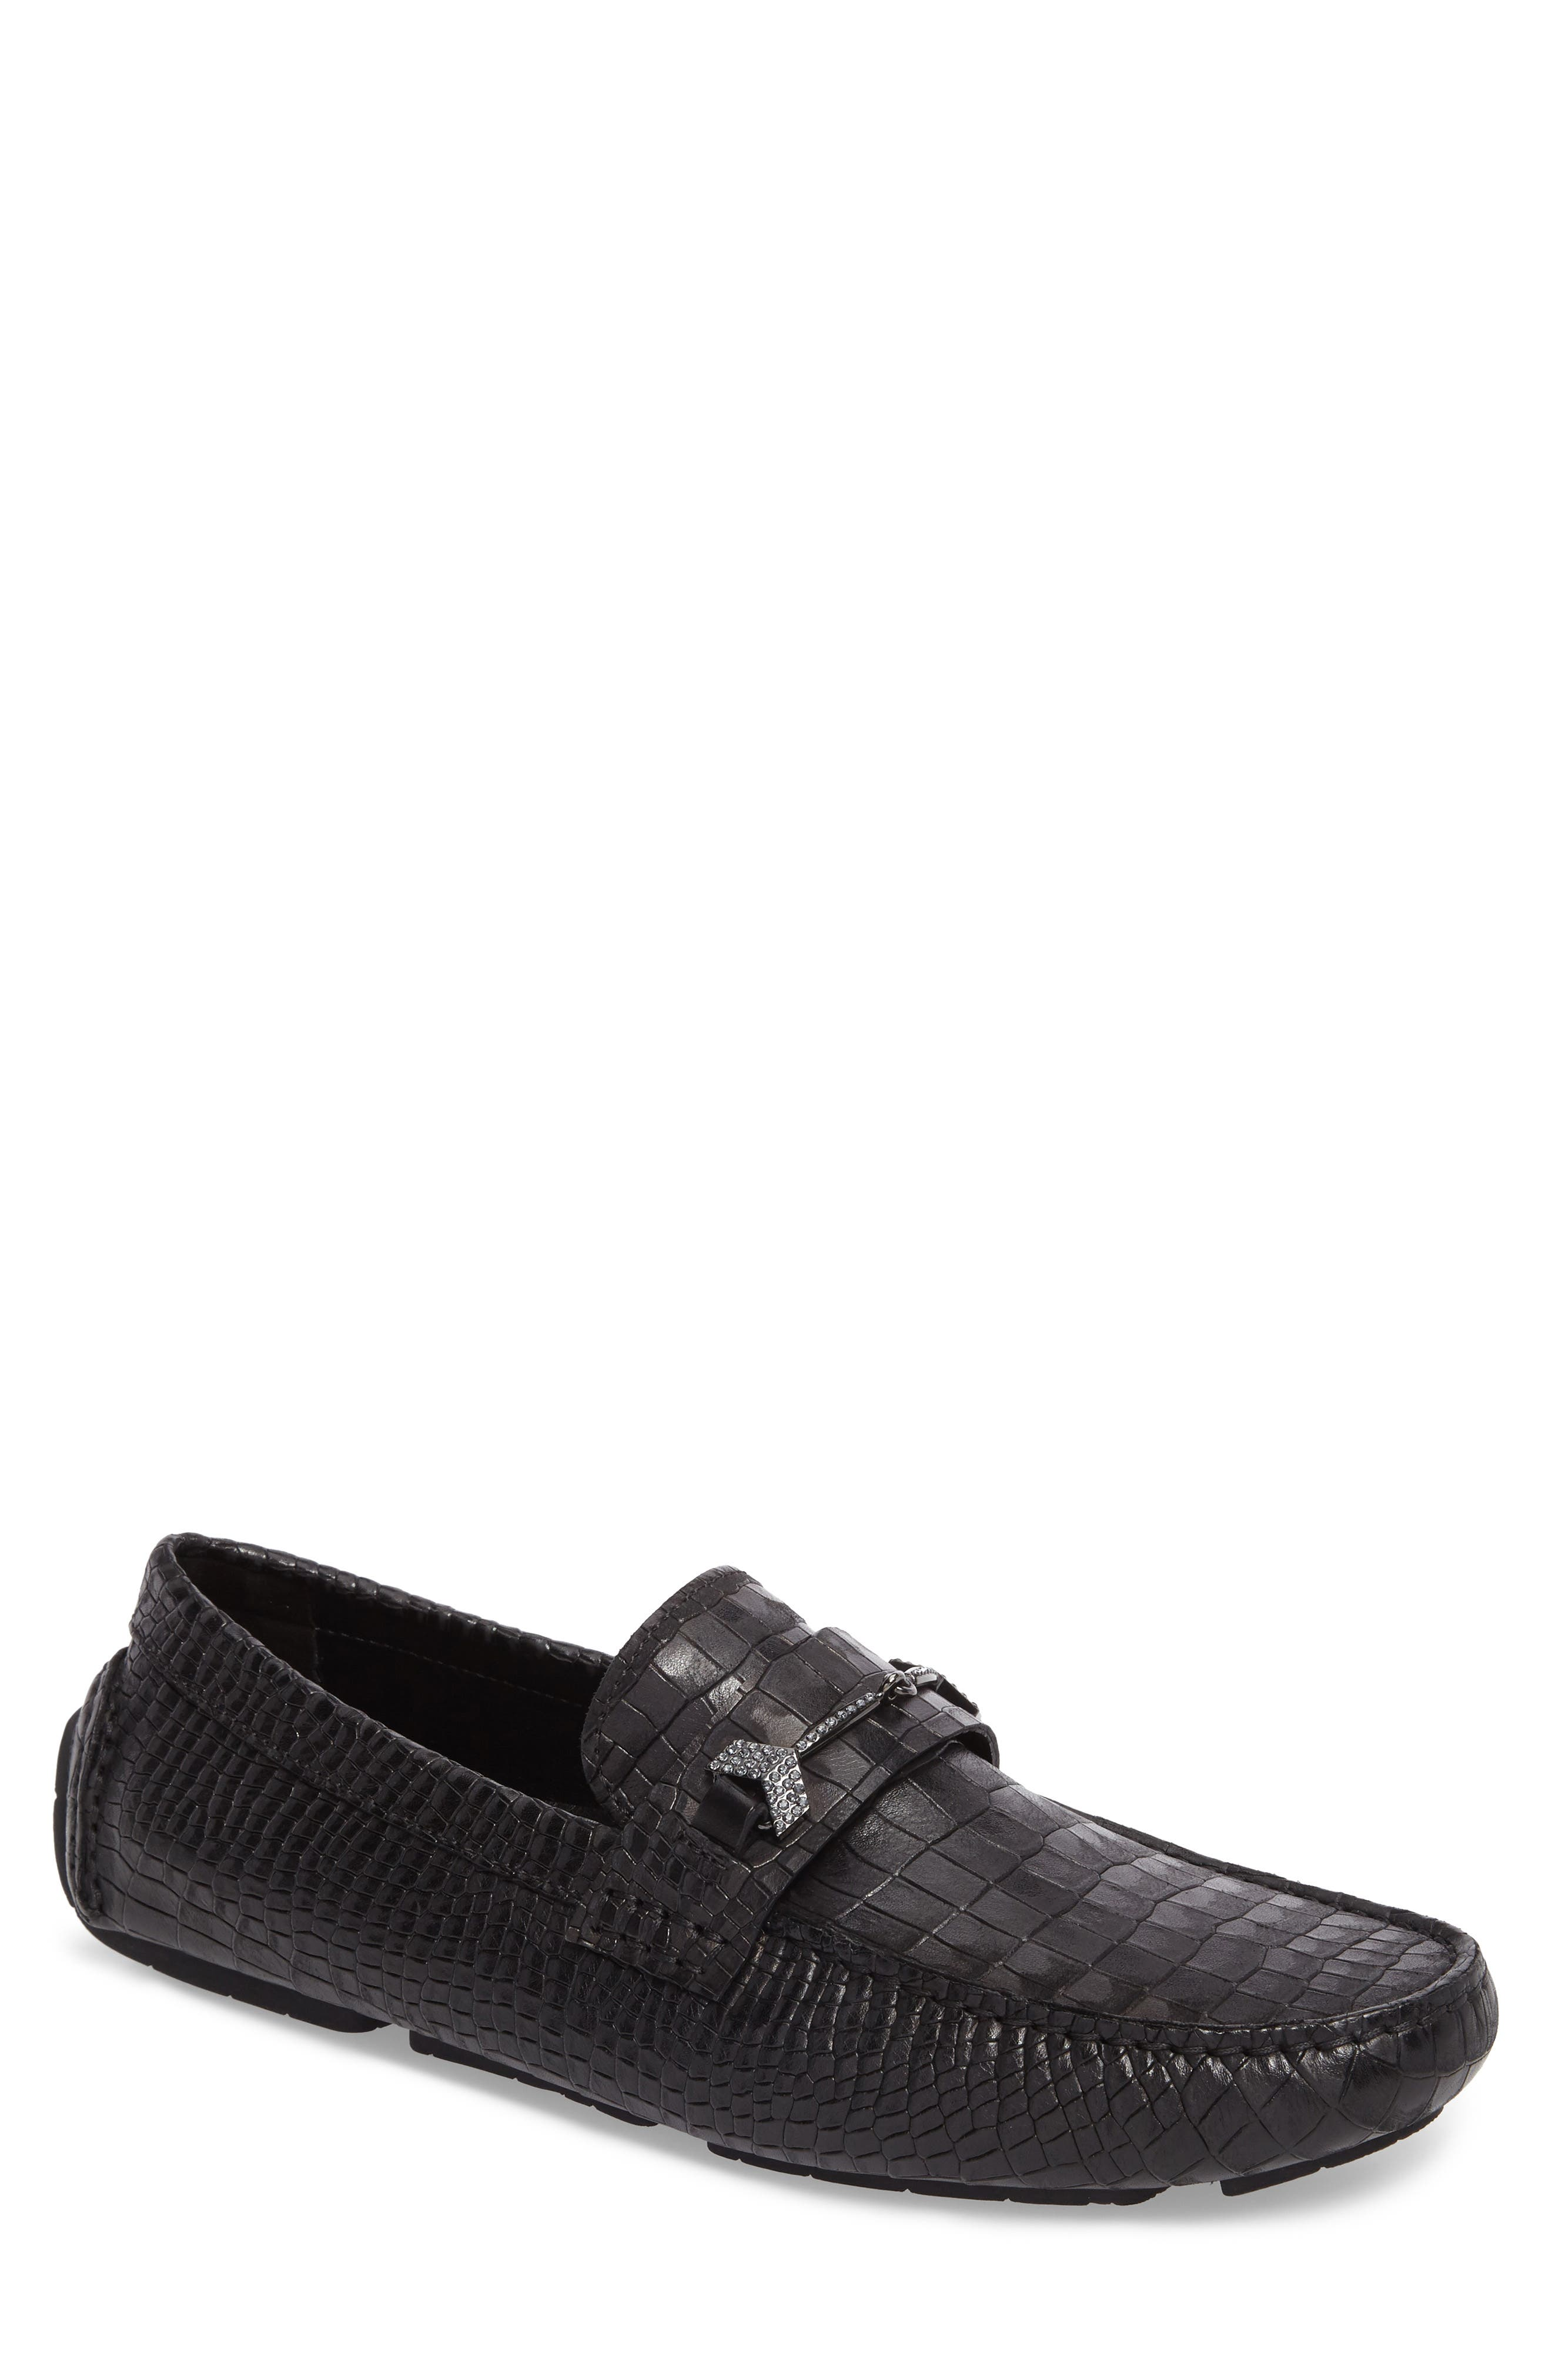 Brewer Croc Textured Driving Loafer,                             Main thumbnail 1, color,